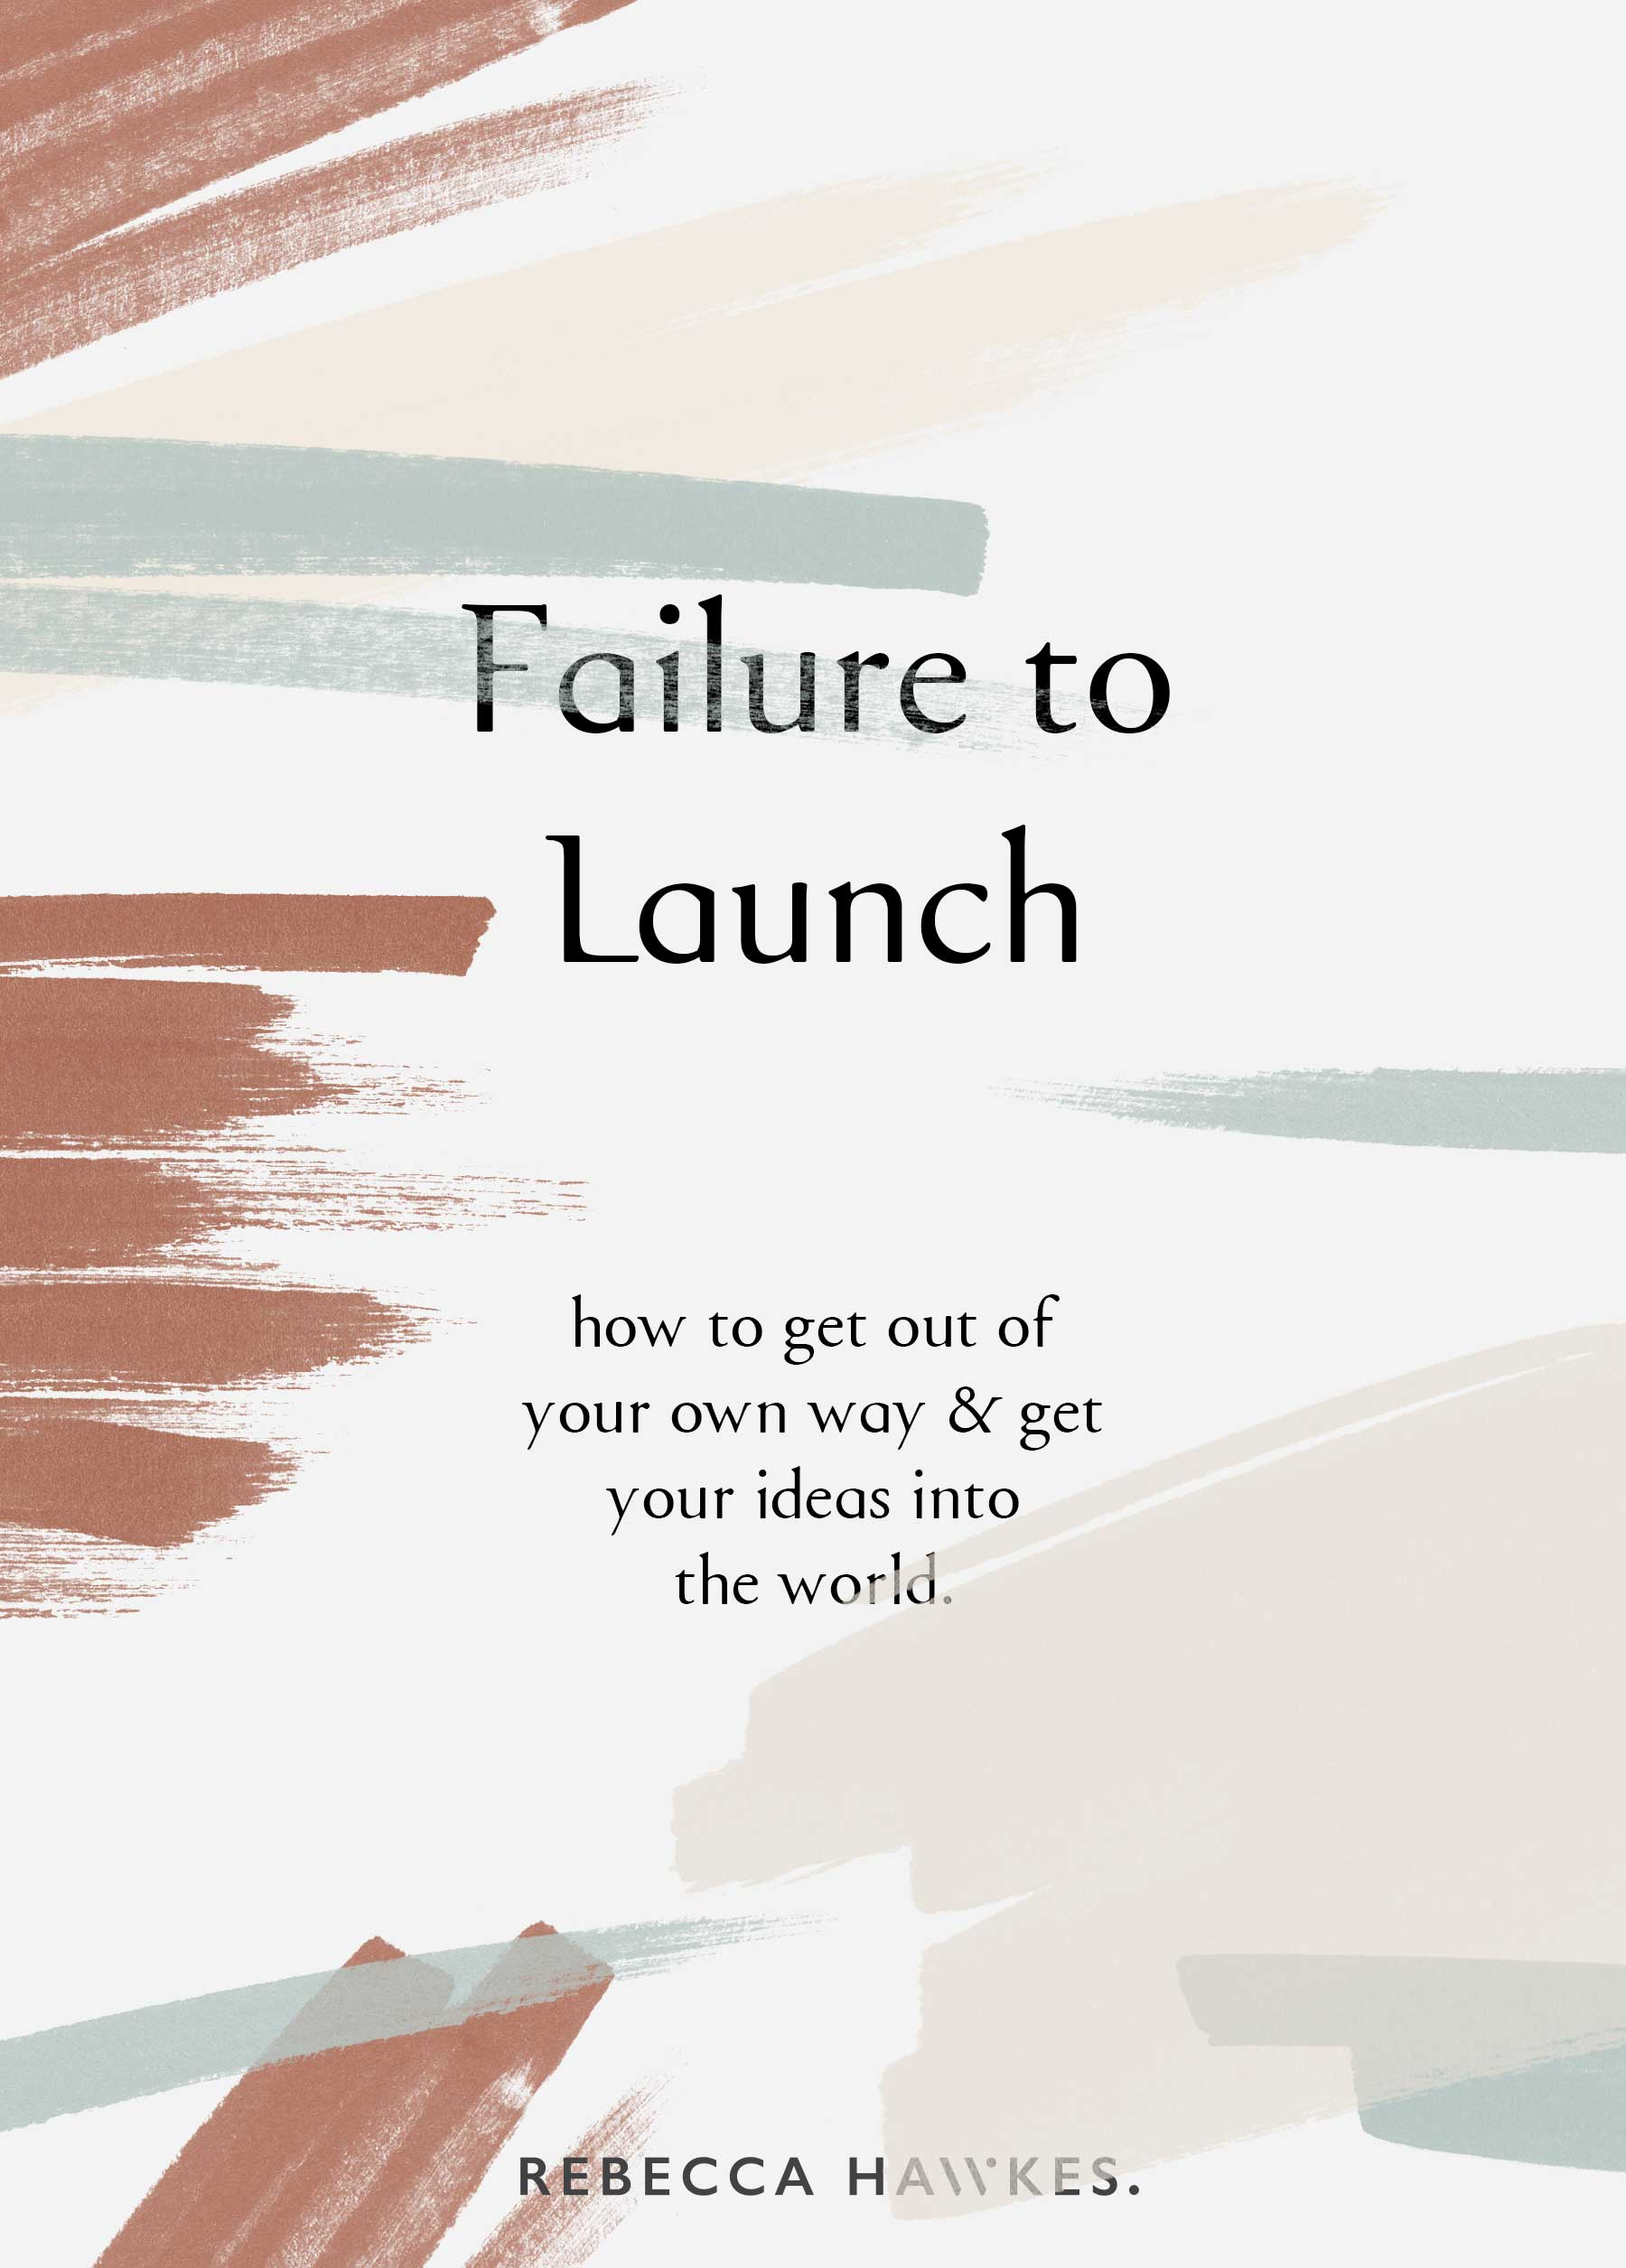 Failure to Launch | How to get out of your own way and launch your idea